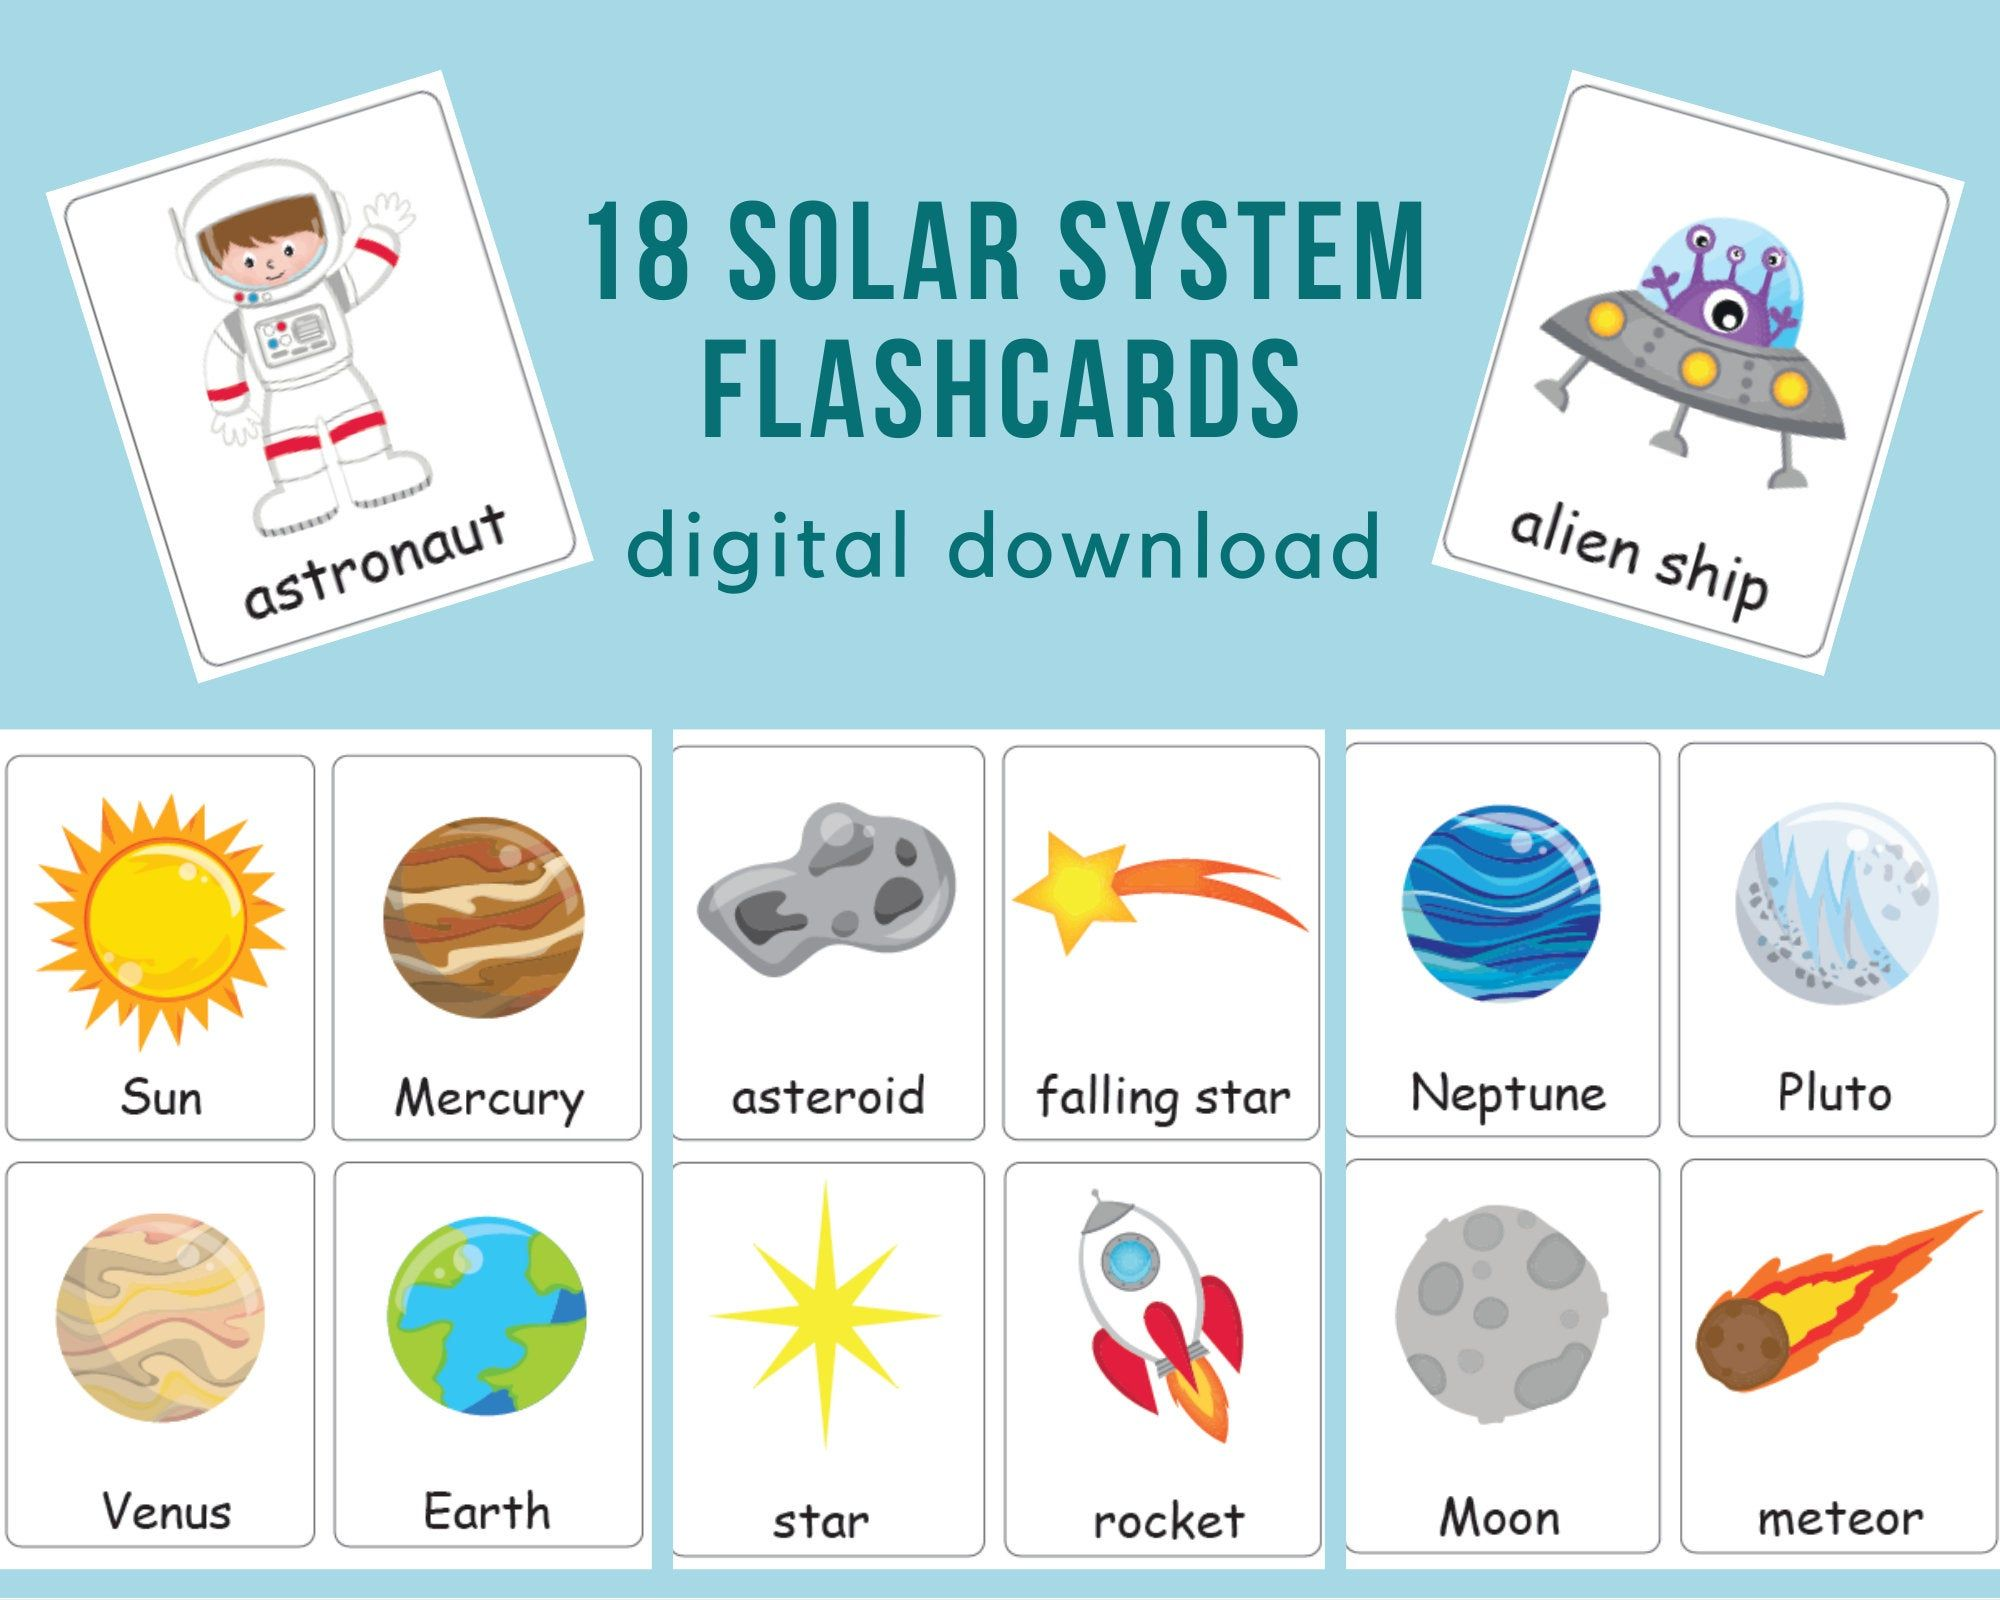 Solar System Flashcards Galaxy Activity For Toddler Planets Cards Montessori Cards Printable Flash Cards Free Flashcards Printable Flash Cards [ 1600 x 2000 Pixel ]